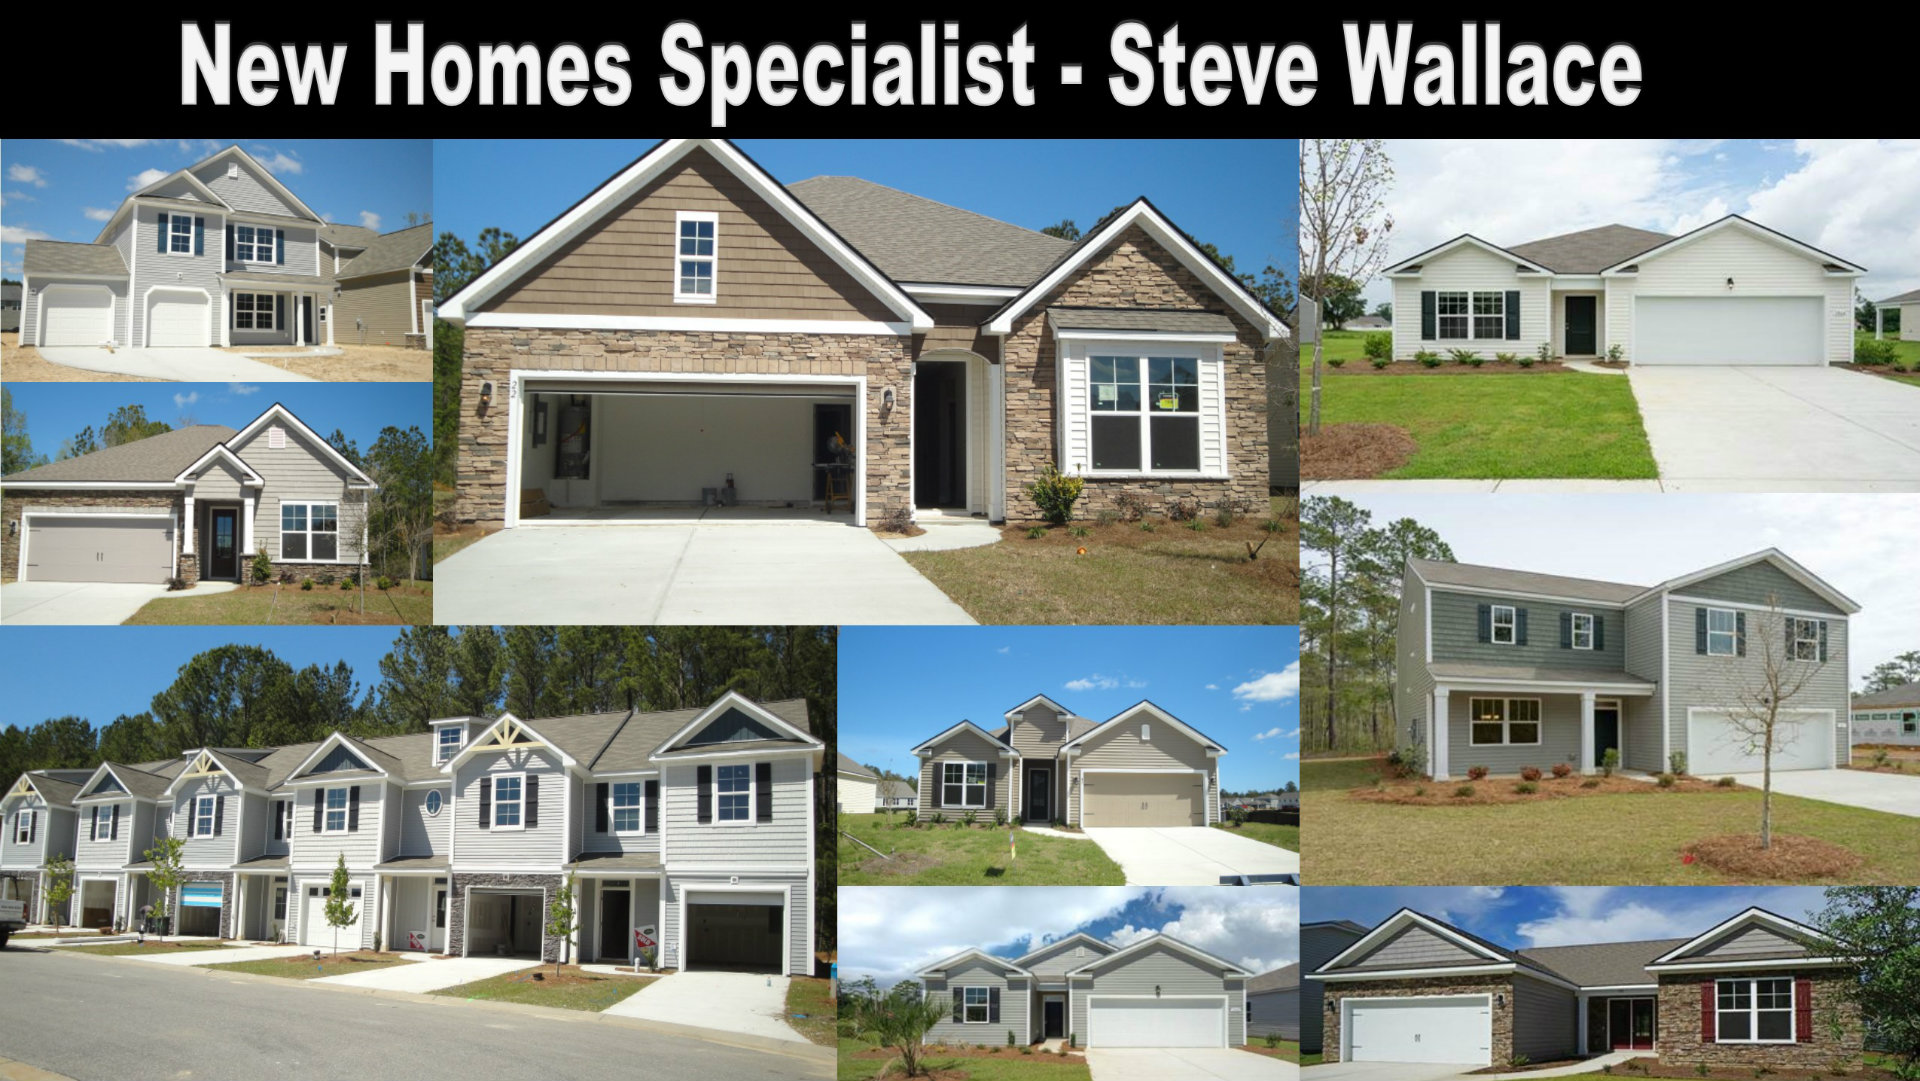 New Homes Specialist In Bluffton South Carolina